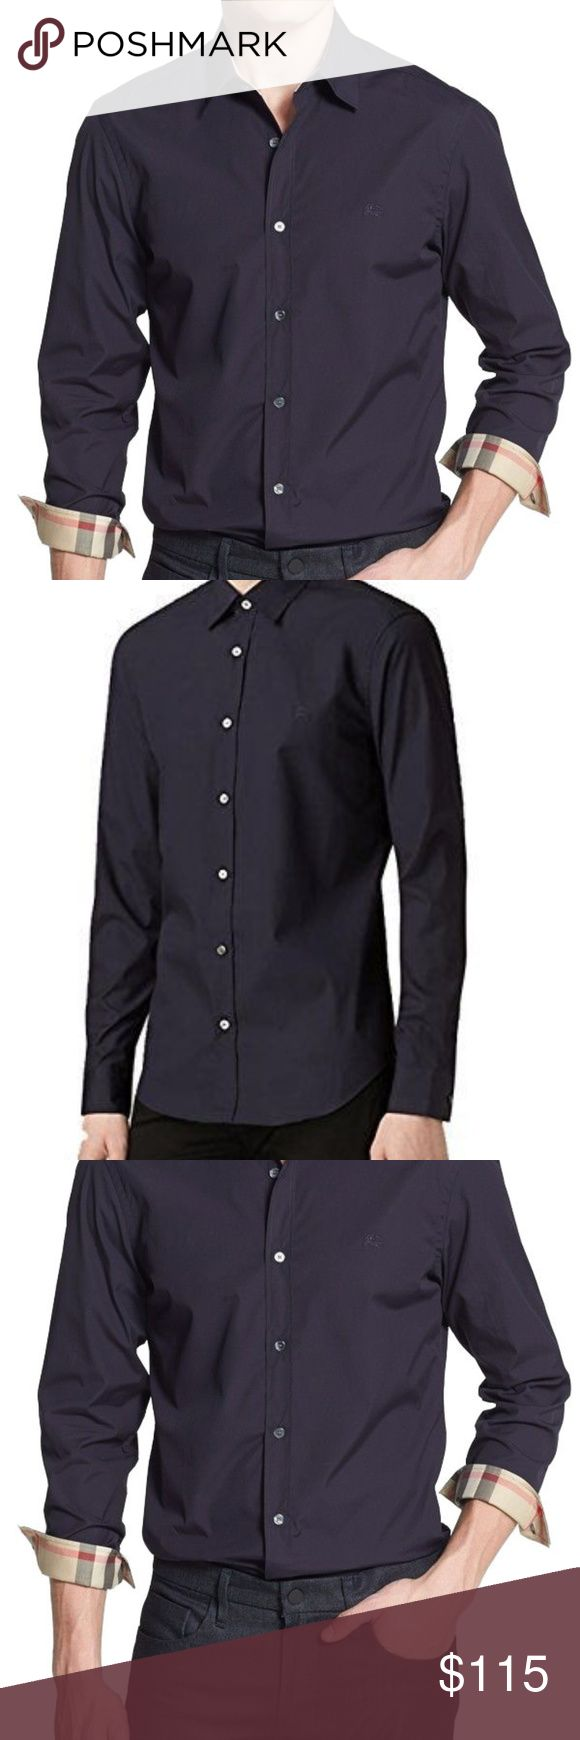 Burberry Brit men's Henry check long sleeve shirt Product details: A straight fit shirt in cotton with elastane for comfort.Check accent at the collar and cuffs. Single-button cuffs. Back yoke. 97% cotton, 3% elastane. Machine wash warm, tumble dry low. By Burberry Brit; imported. Men's Sportswear Burberry Shirts